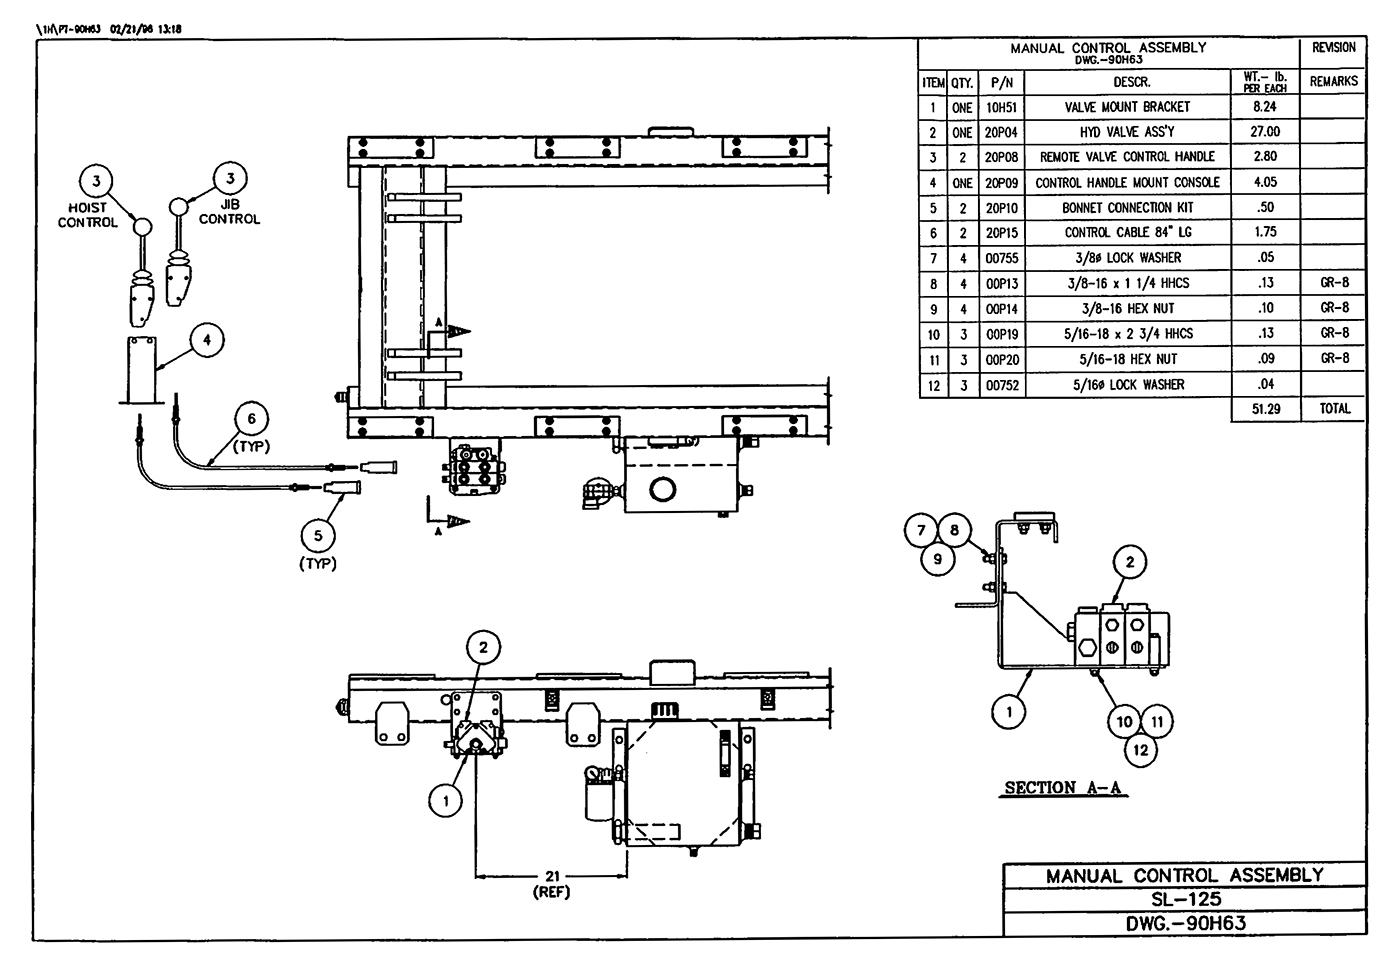 Honda 125 Wiring Diagram Sl125 Library Iteparts Com Intercon Truck Equipment Online Store 1974 Sl